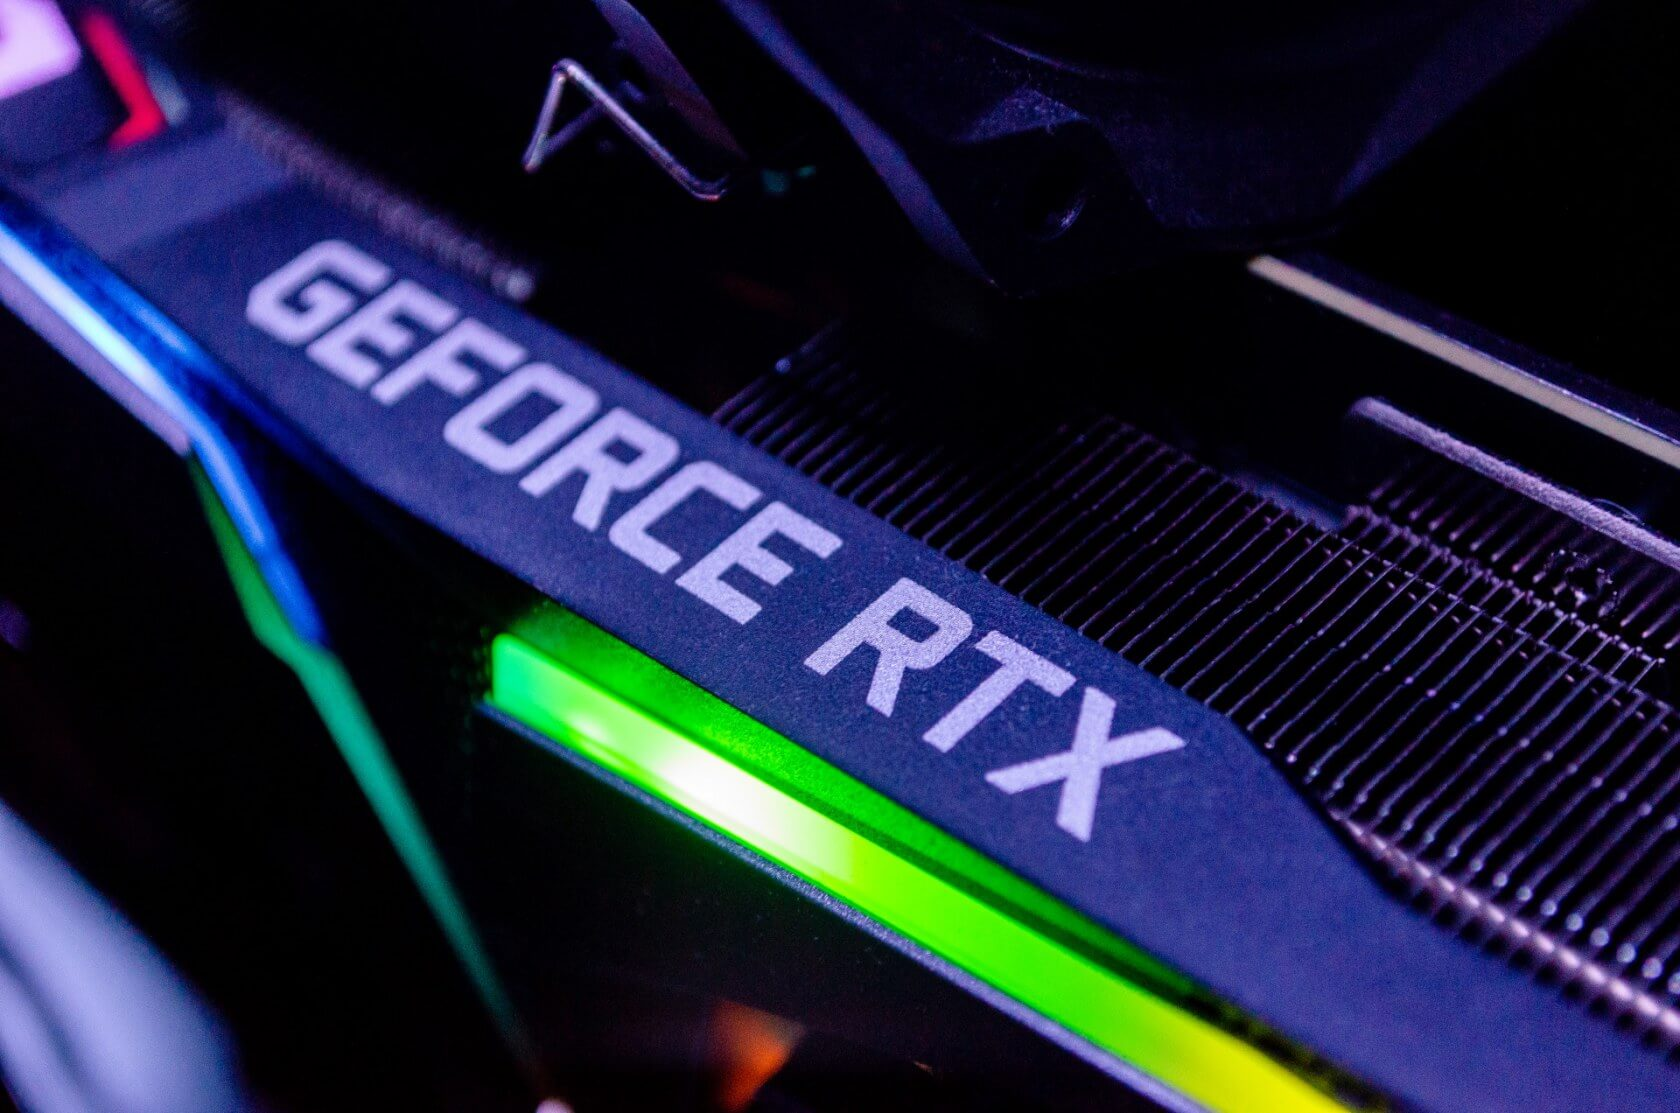 Nvidia's GeForce RTX 3080 and 3090 could enter mass production in August